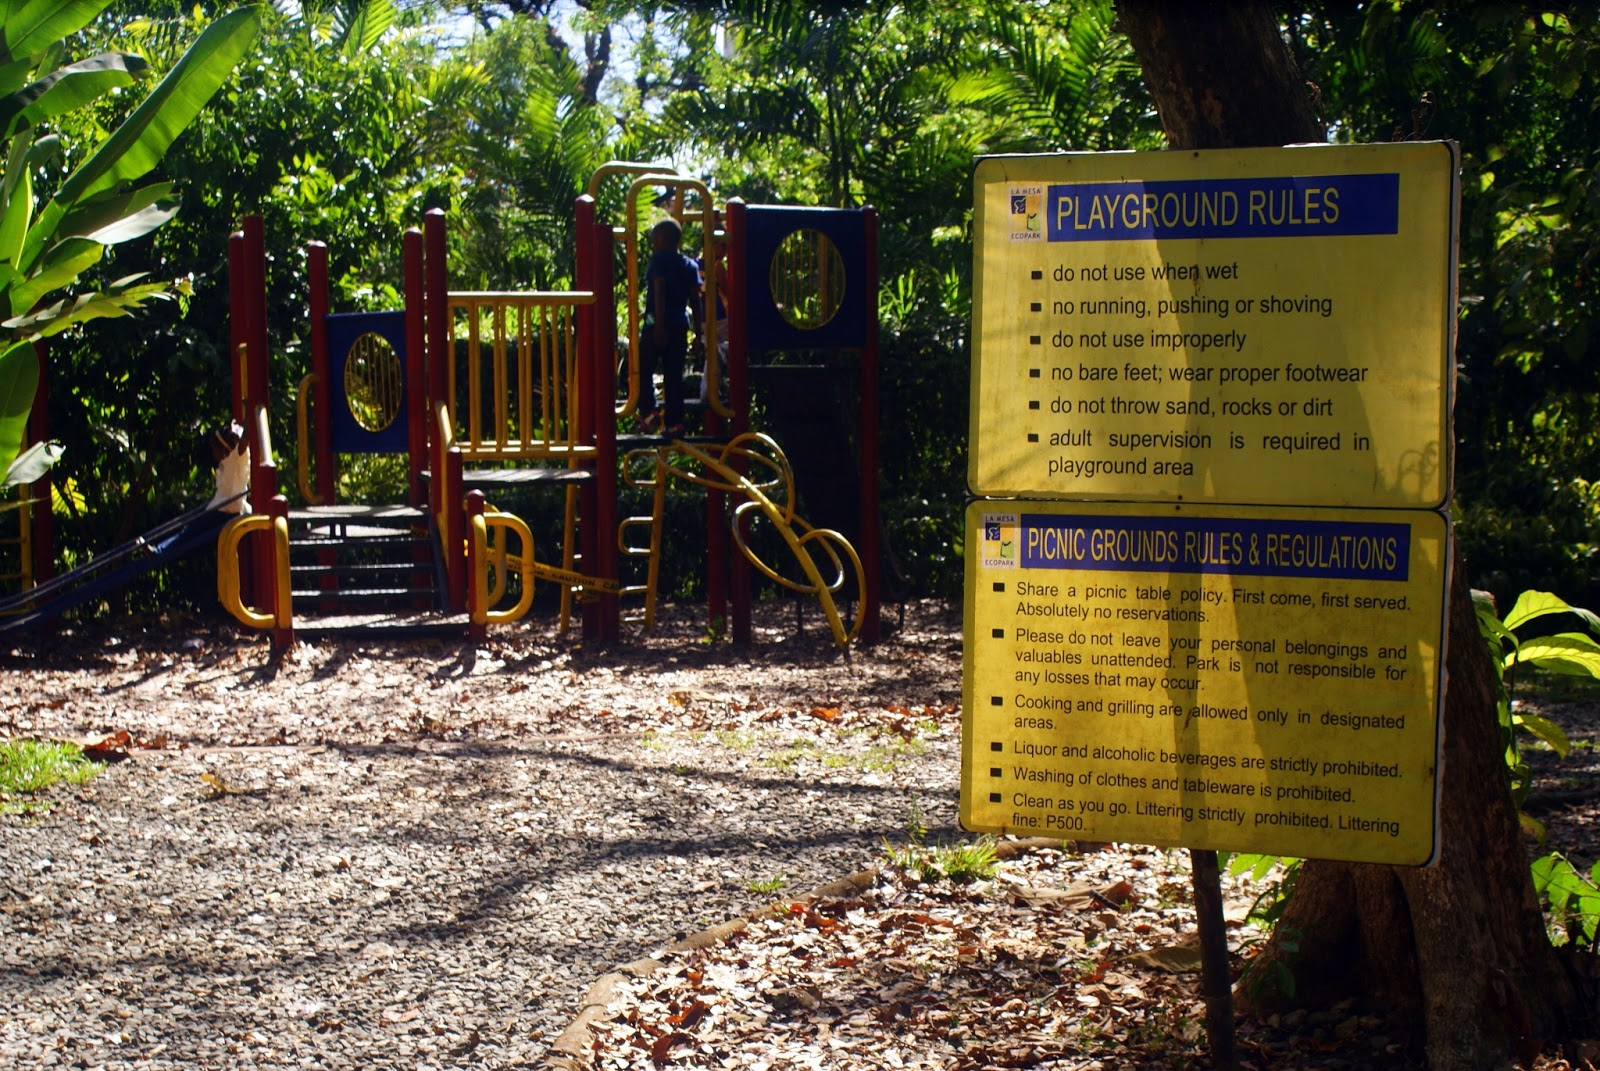 Play ground rules - La mesa eco park swimming pool photos ...